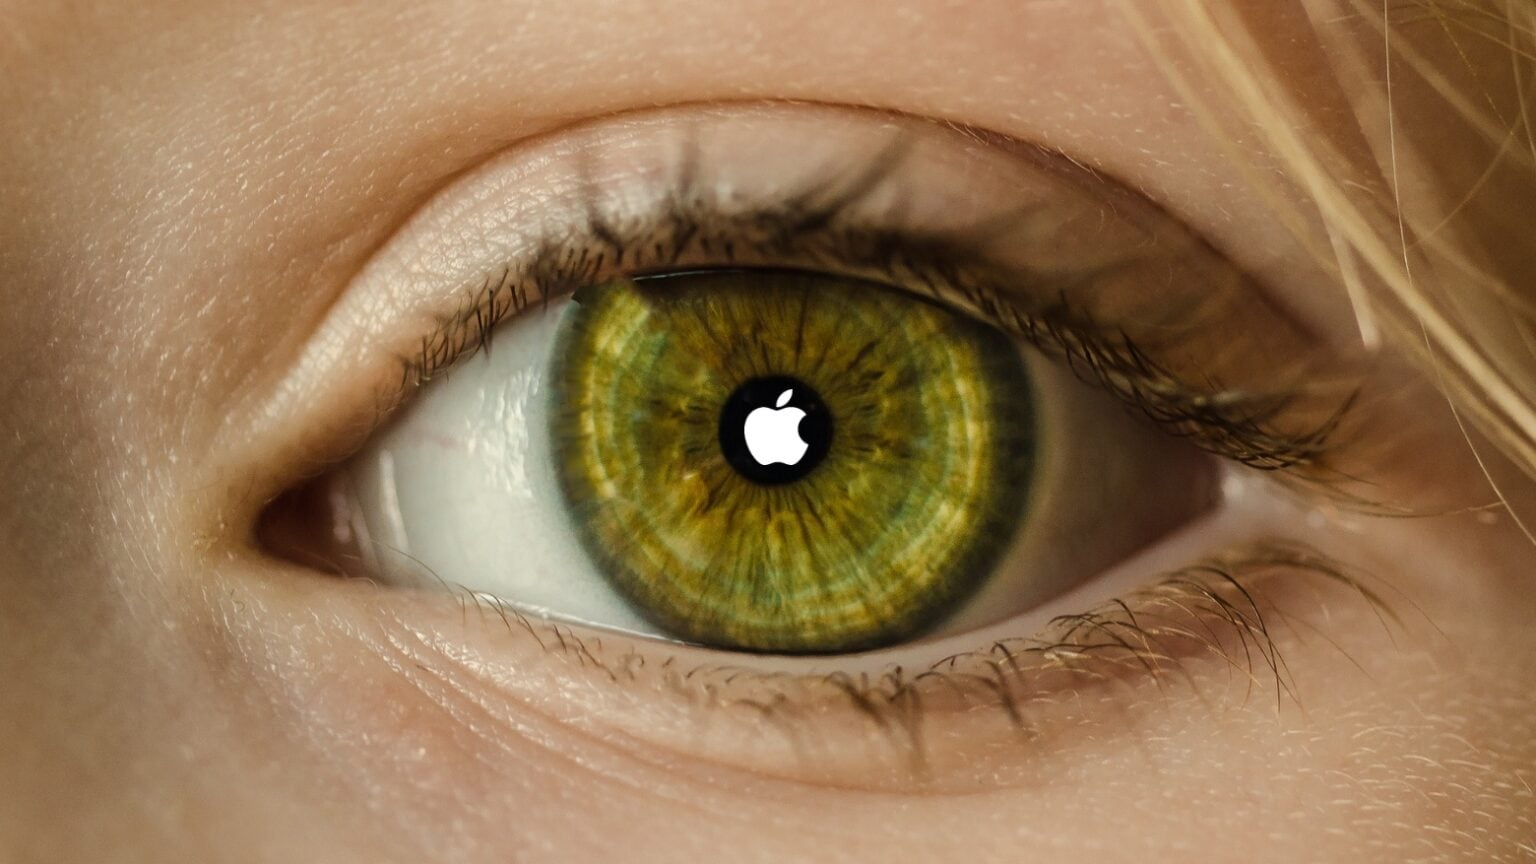 The eventual culmination of Apple augmented reality efforts will be AR contact lenses